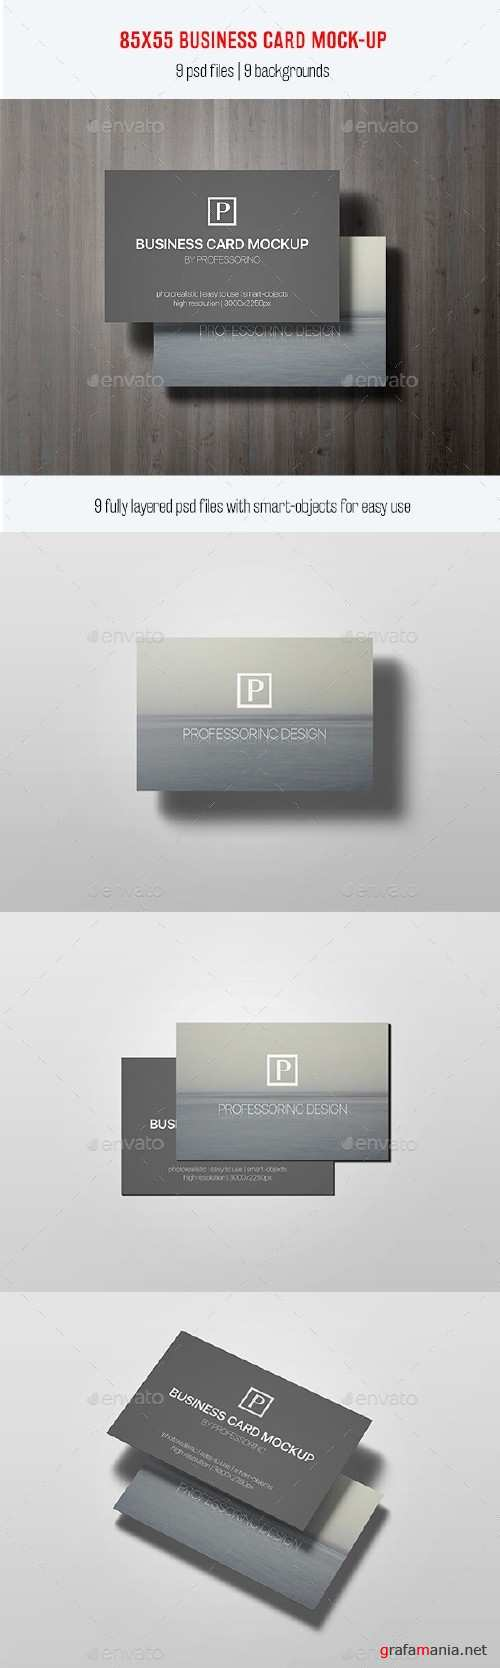 85x55 Business Card Mock-Up Vol. 2 - 12578507